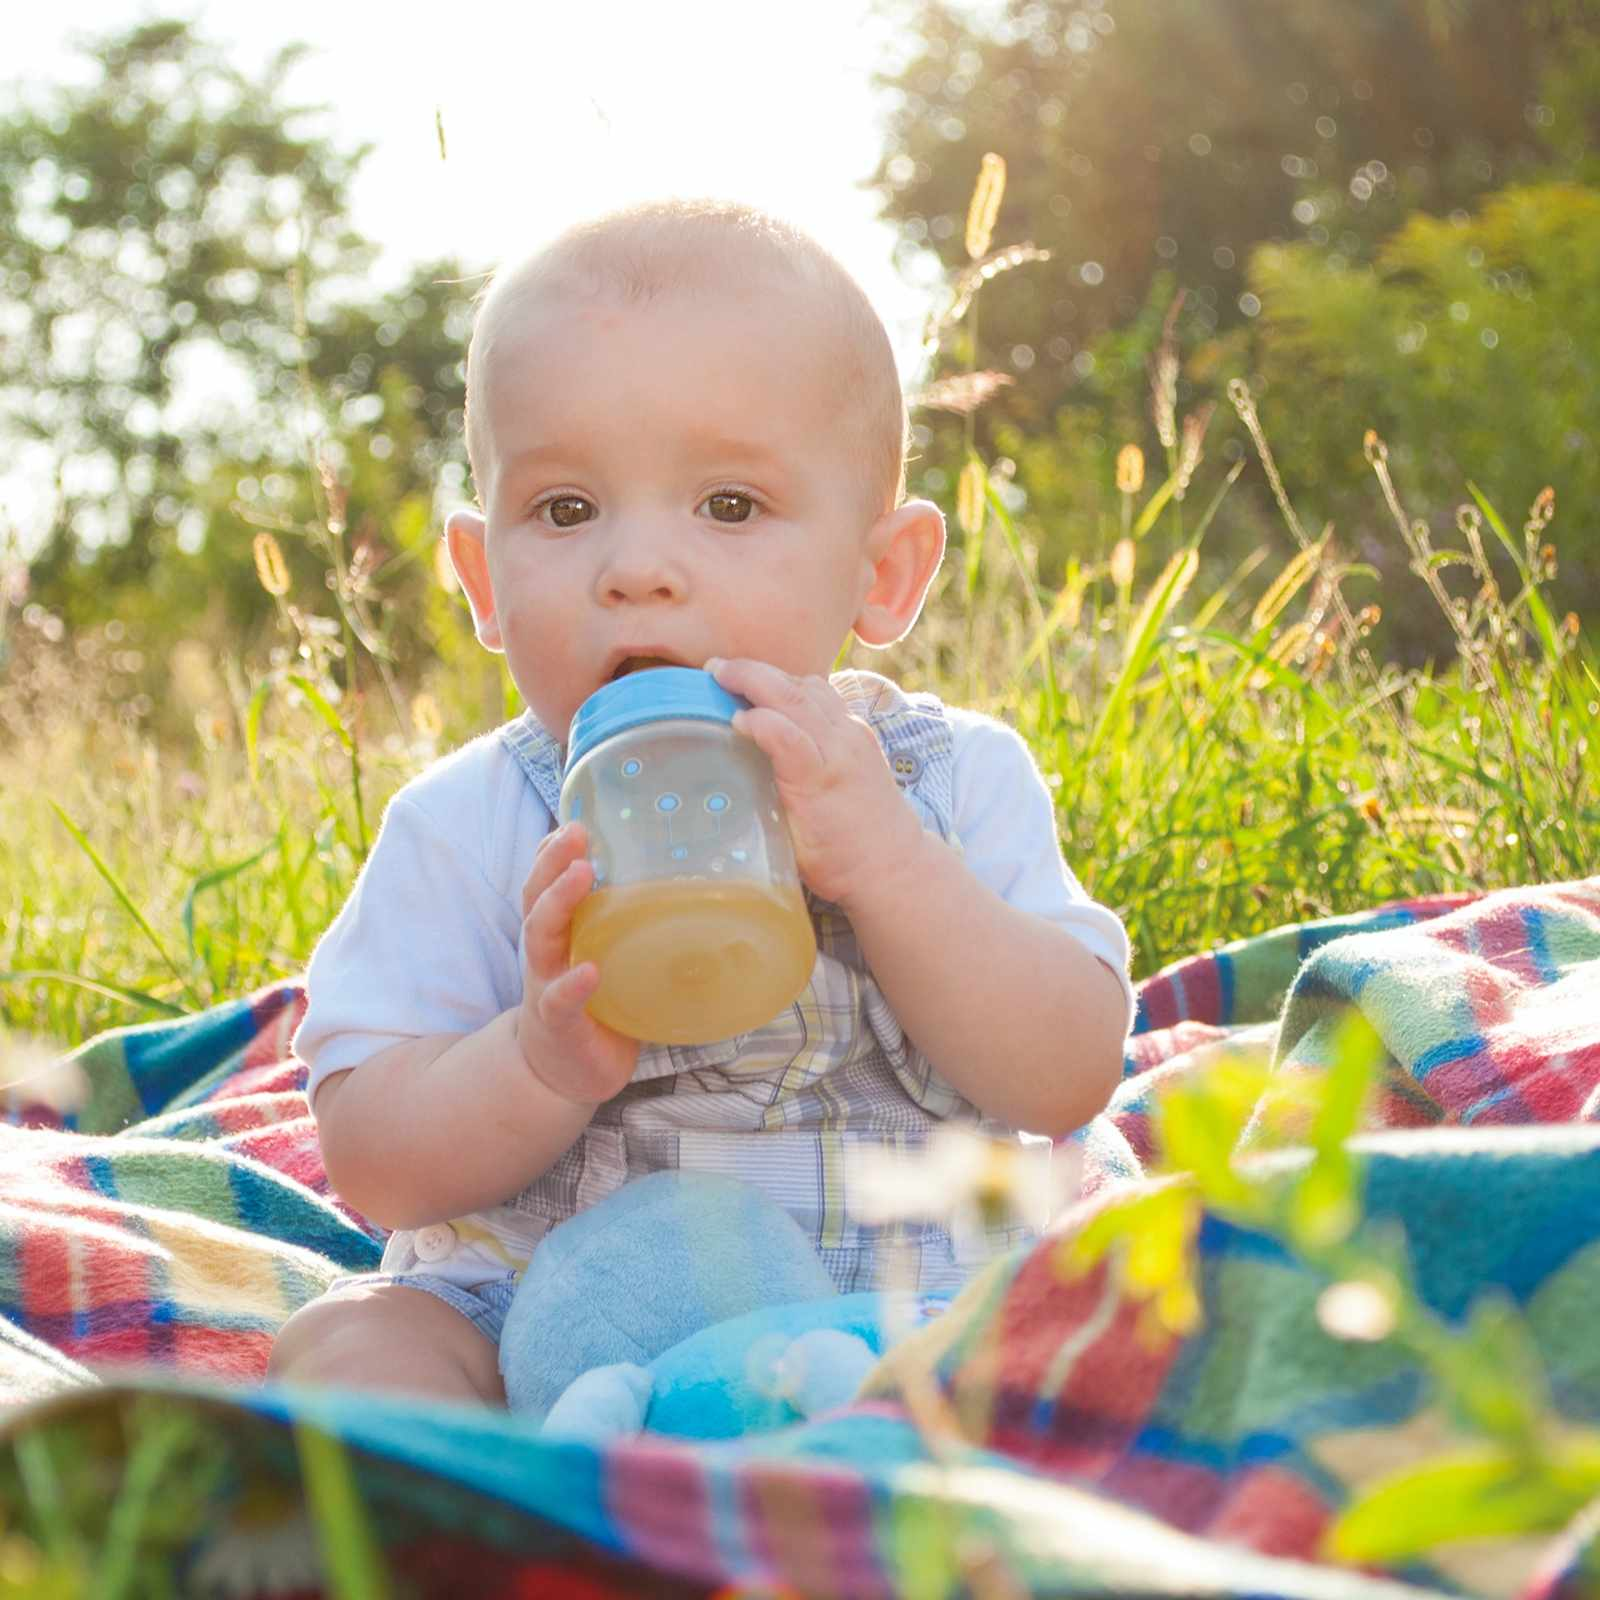 a baby sitting outside on a blanket drinking from a juice bottle